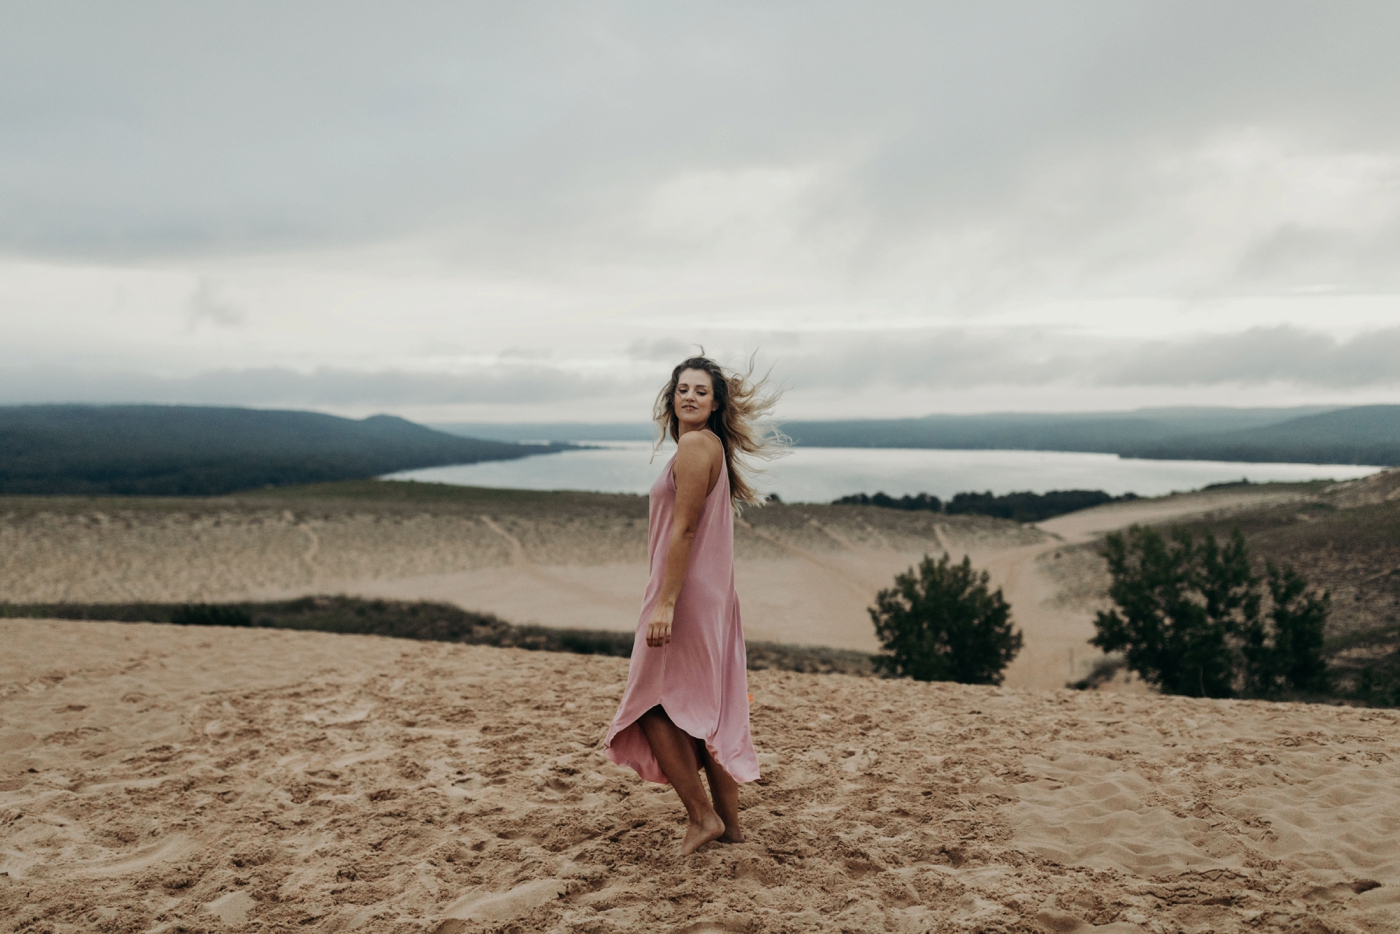 Sleeping_Bear_Dunes_Couples_Adventure_Session_Adventure_Wedding_Photographer_Hiking_with_Heels_Brett+Emily-67.jpg